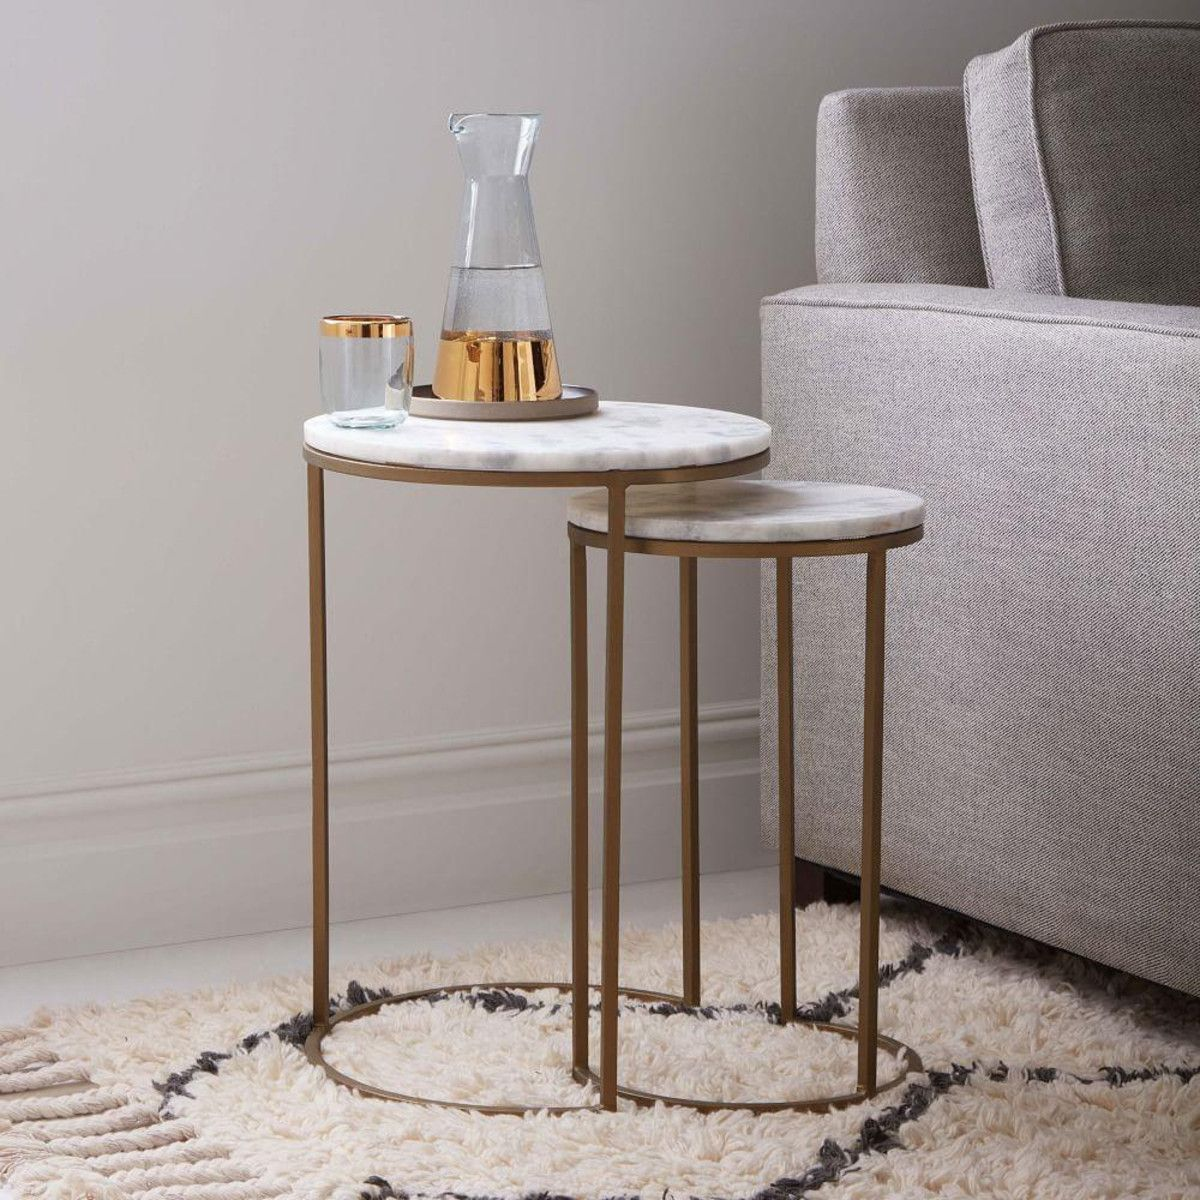 top ideas marble end tables home and living room table small accent check again furniture idea black chairs nautical desk dark cherry mirrored lamp lantern white nightstand